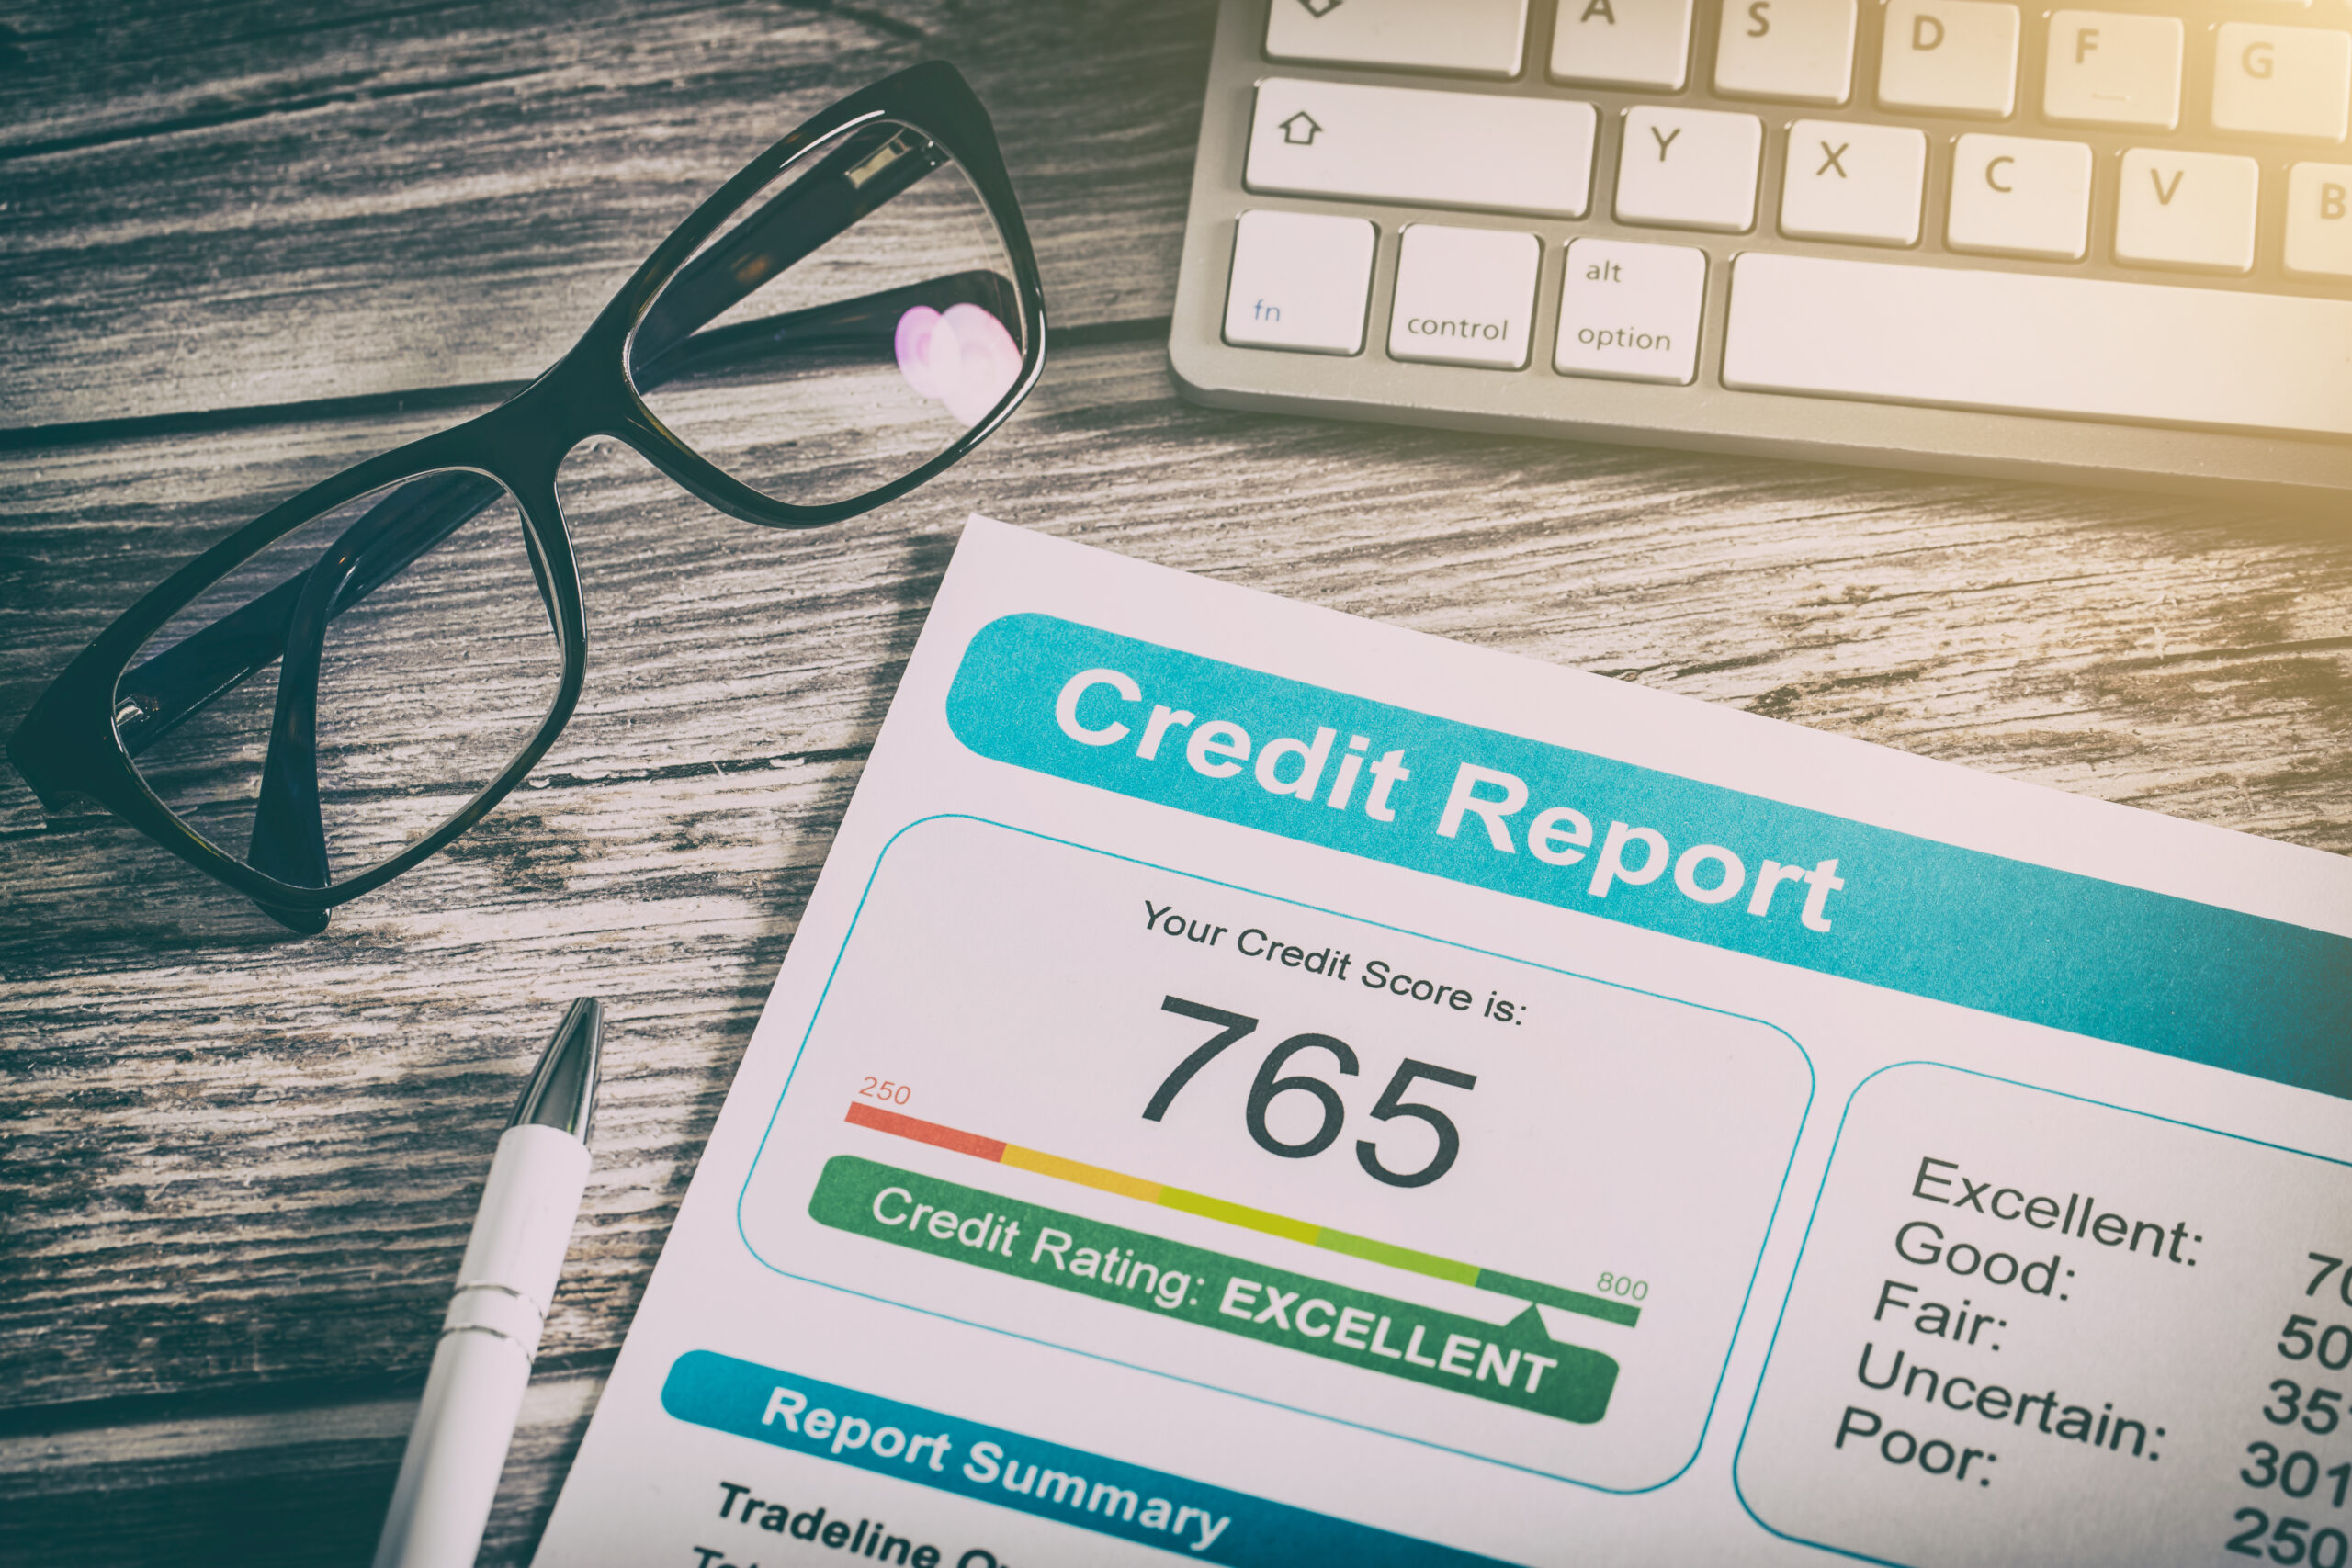 FICO Credit Scores and Your Credit Report